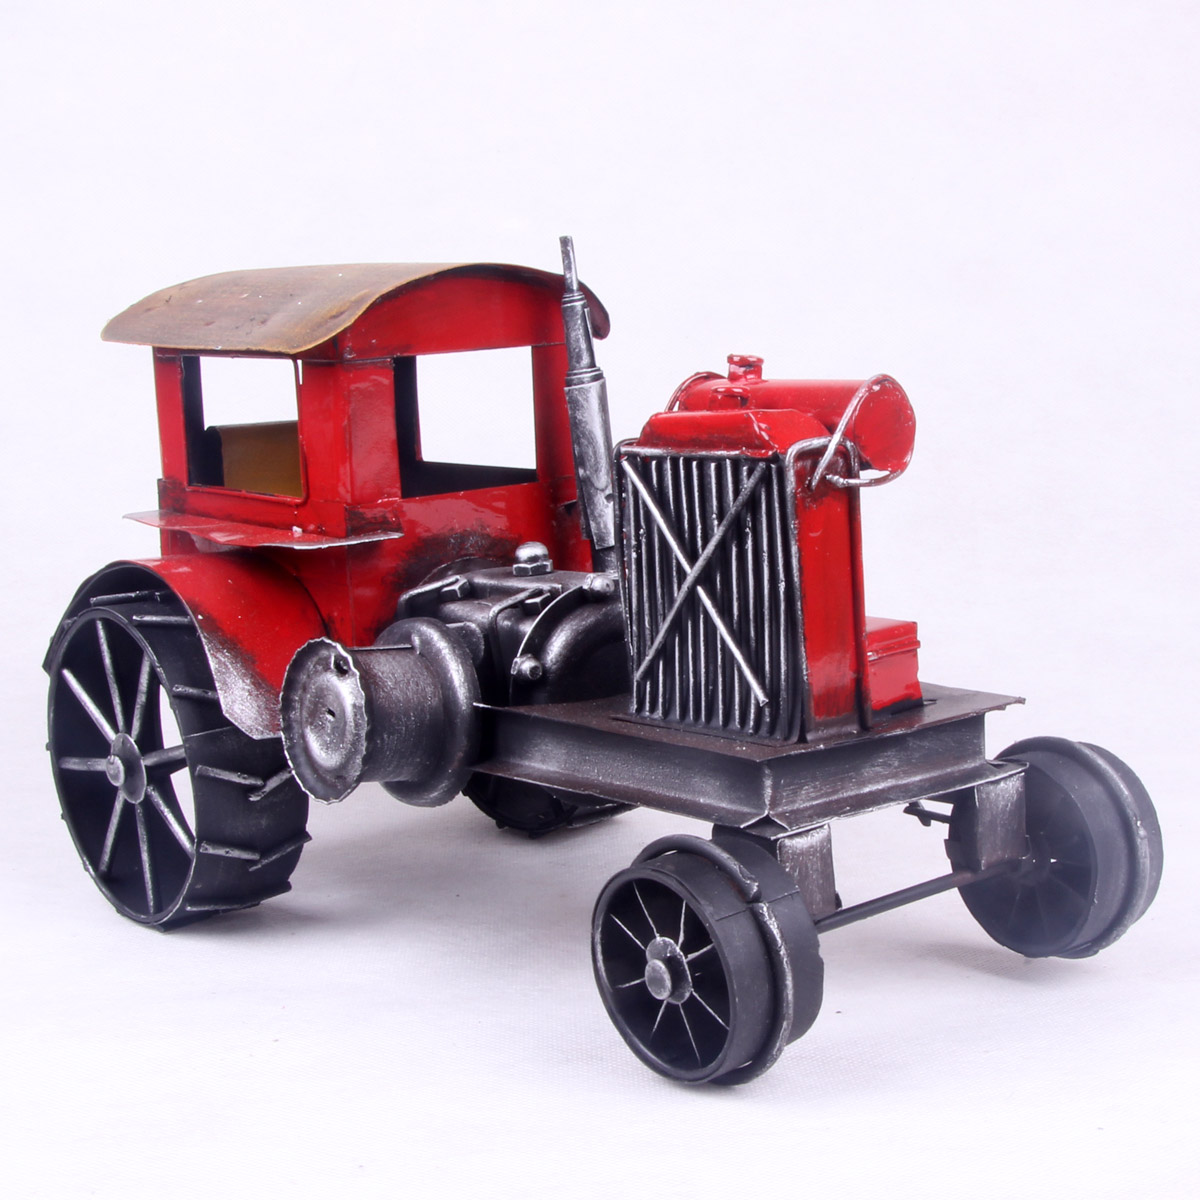 American vintage tent car tractor iron crafts car model toy(China (Mainland))